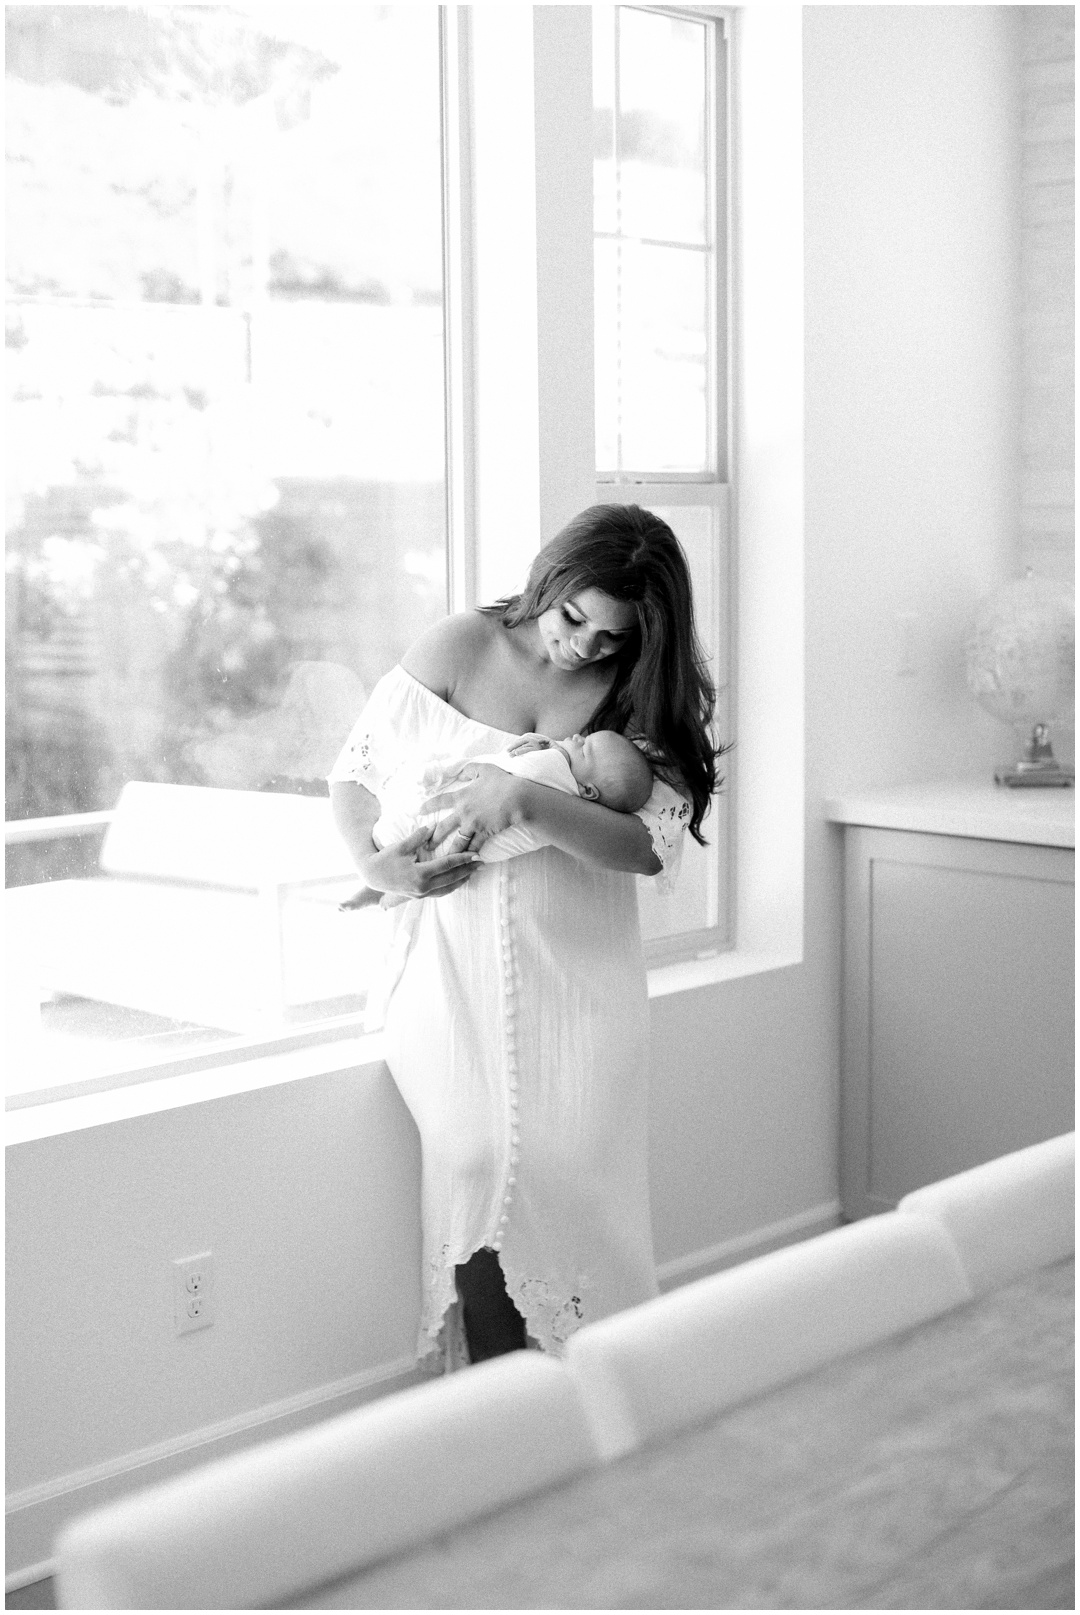 Newport_Beach_Newborn_Light_Airy_Natural_Photographer_Newport_Beach_In-Home_Photographer_Orange_County_Family_Photographer_Cori_Kleckner_Photography_Huntington_Beach_Photographer_Family_OC_Newborn_Cara_Burbank_Jeff_Burbank_Newborn_Family__3202.jpg